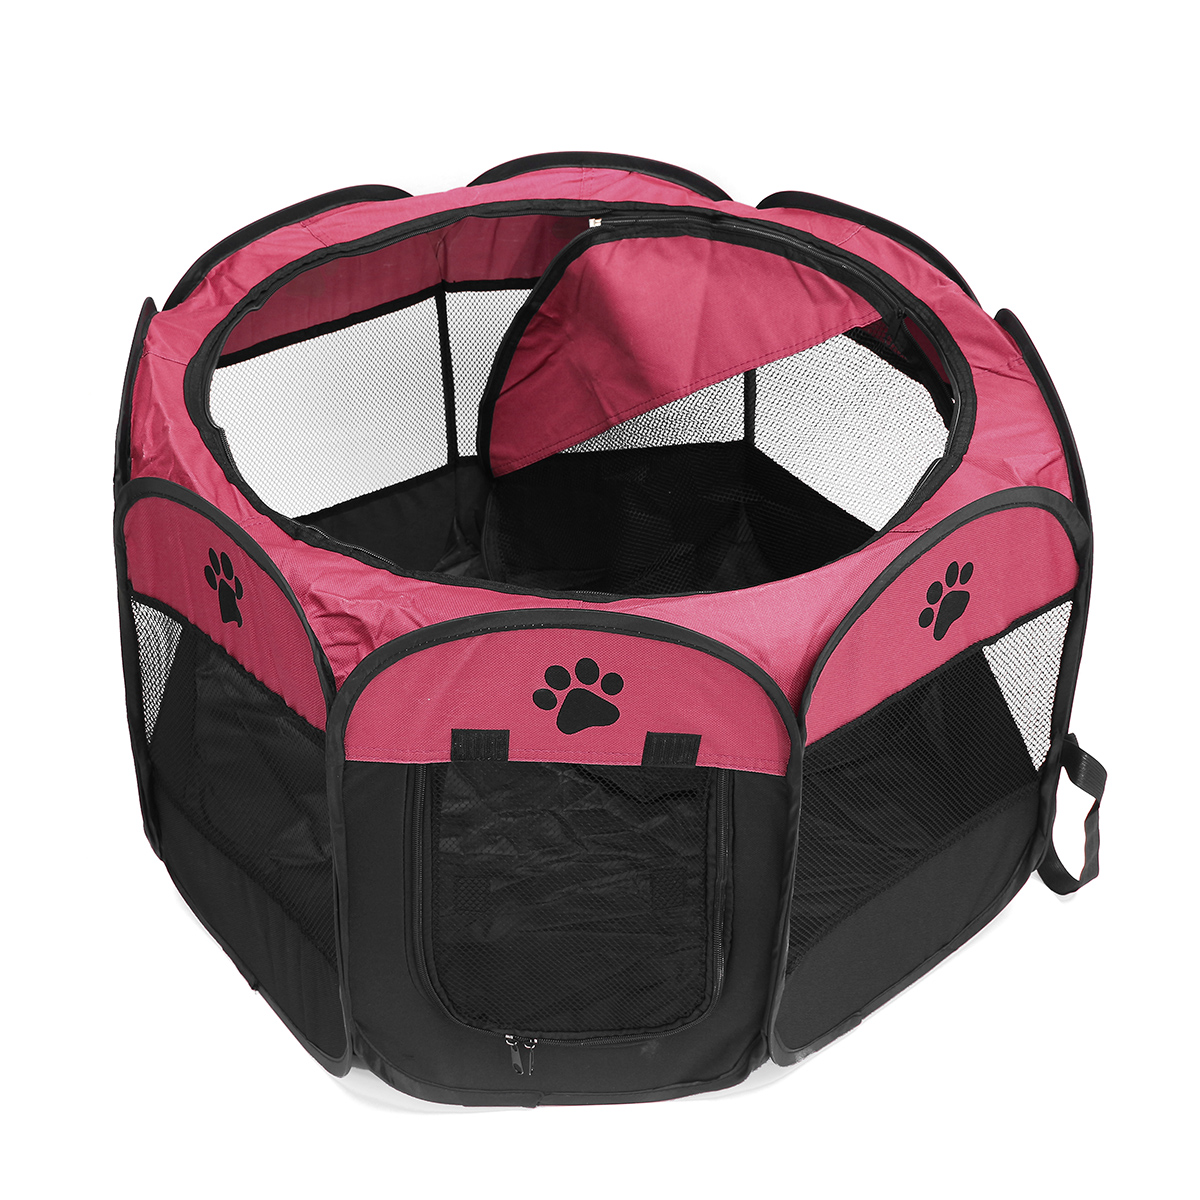 Indoor/outdoor Folding Pet Dog Cat Tent Playpen Exercise Play Pen Soft Fence Cage Kennel Crate